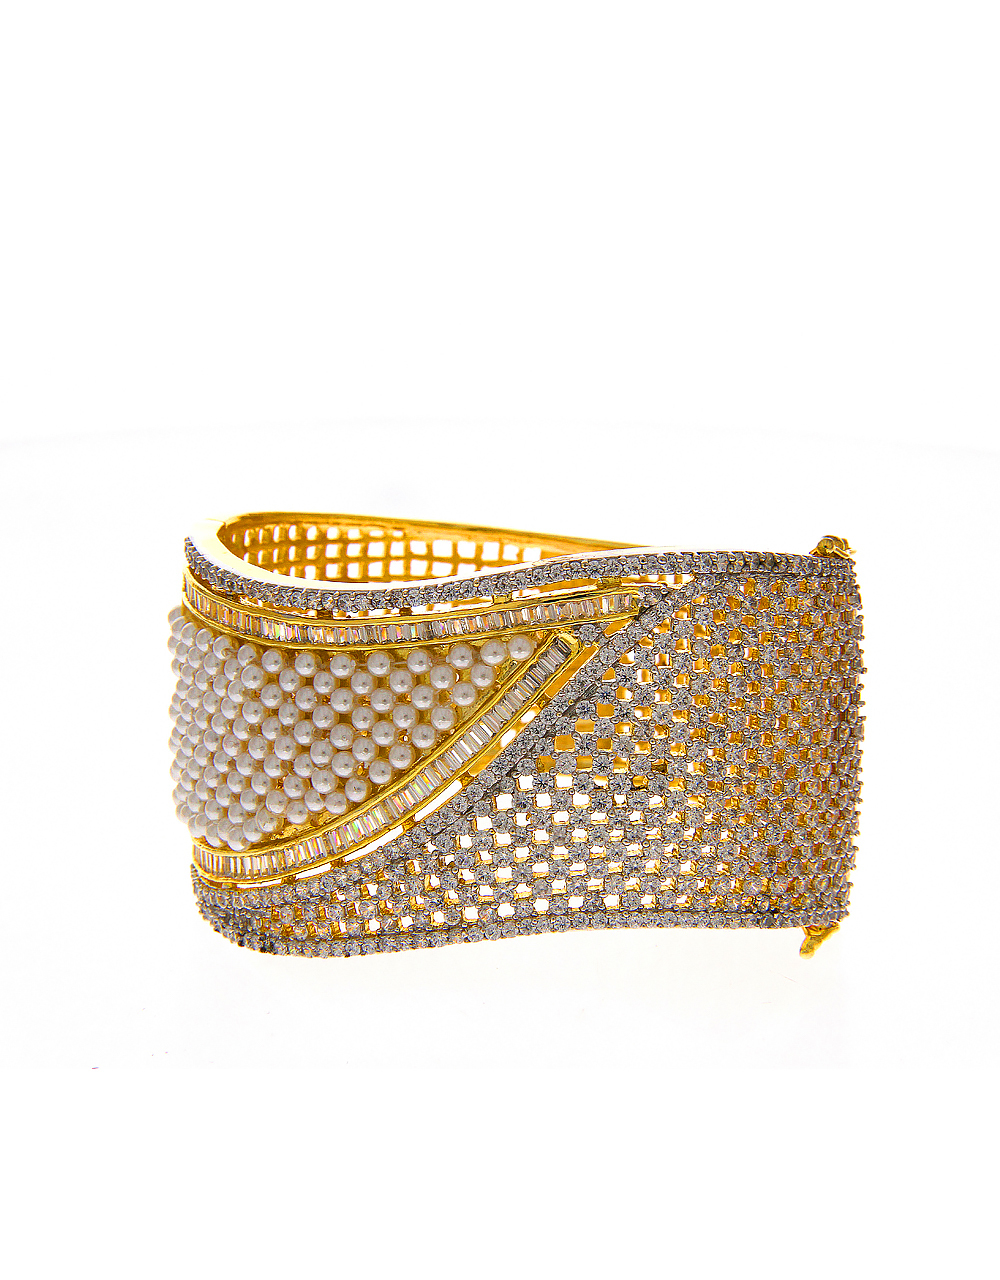 Gold Finish Bracelets Studded With Diamond And Pearls Beads Bracelets